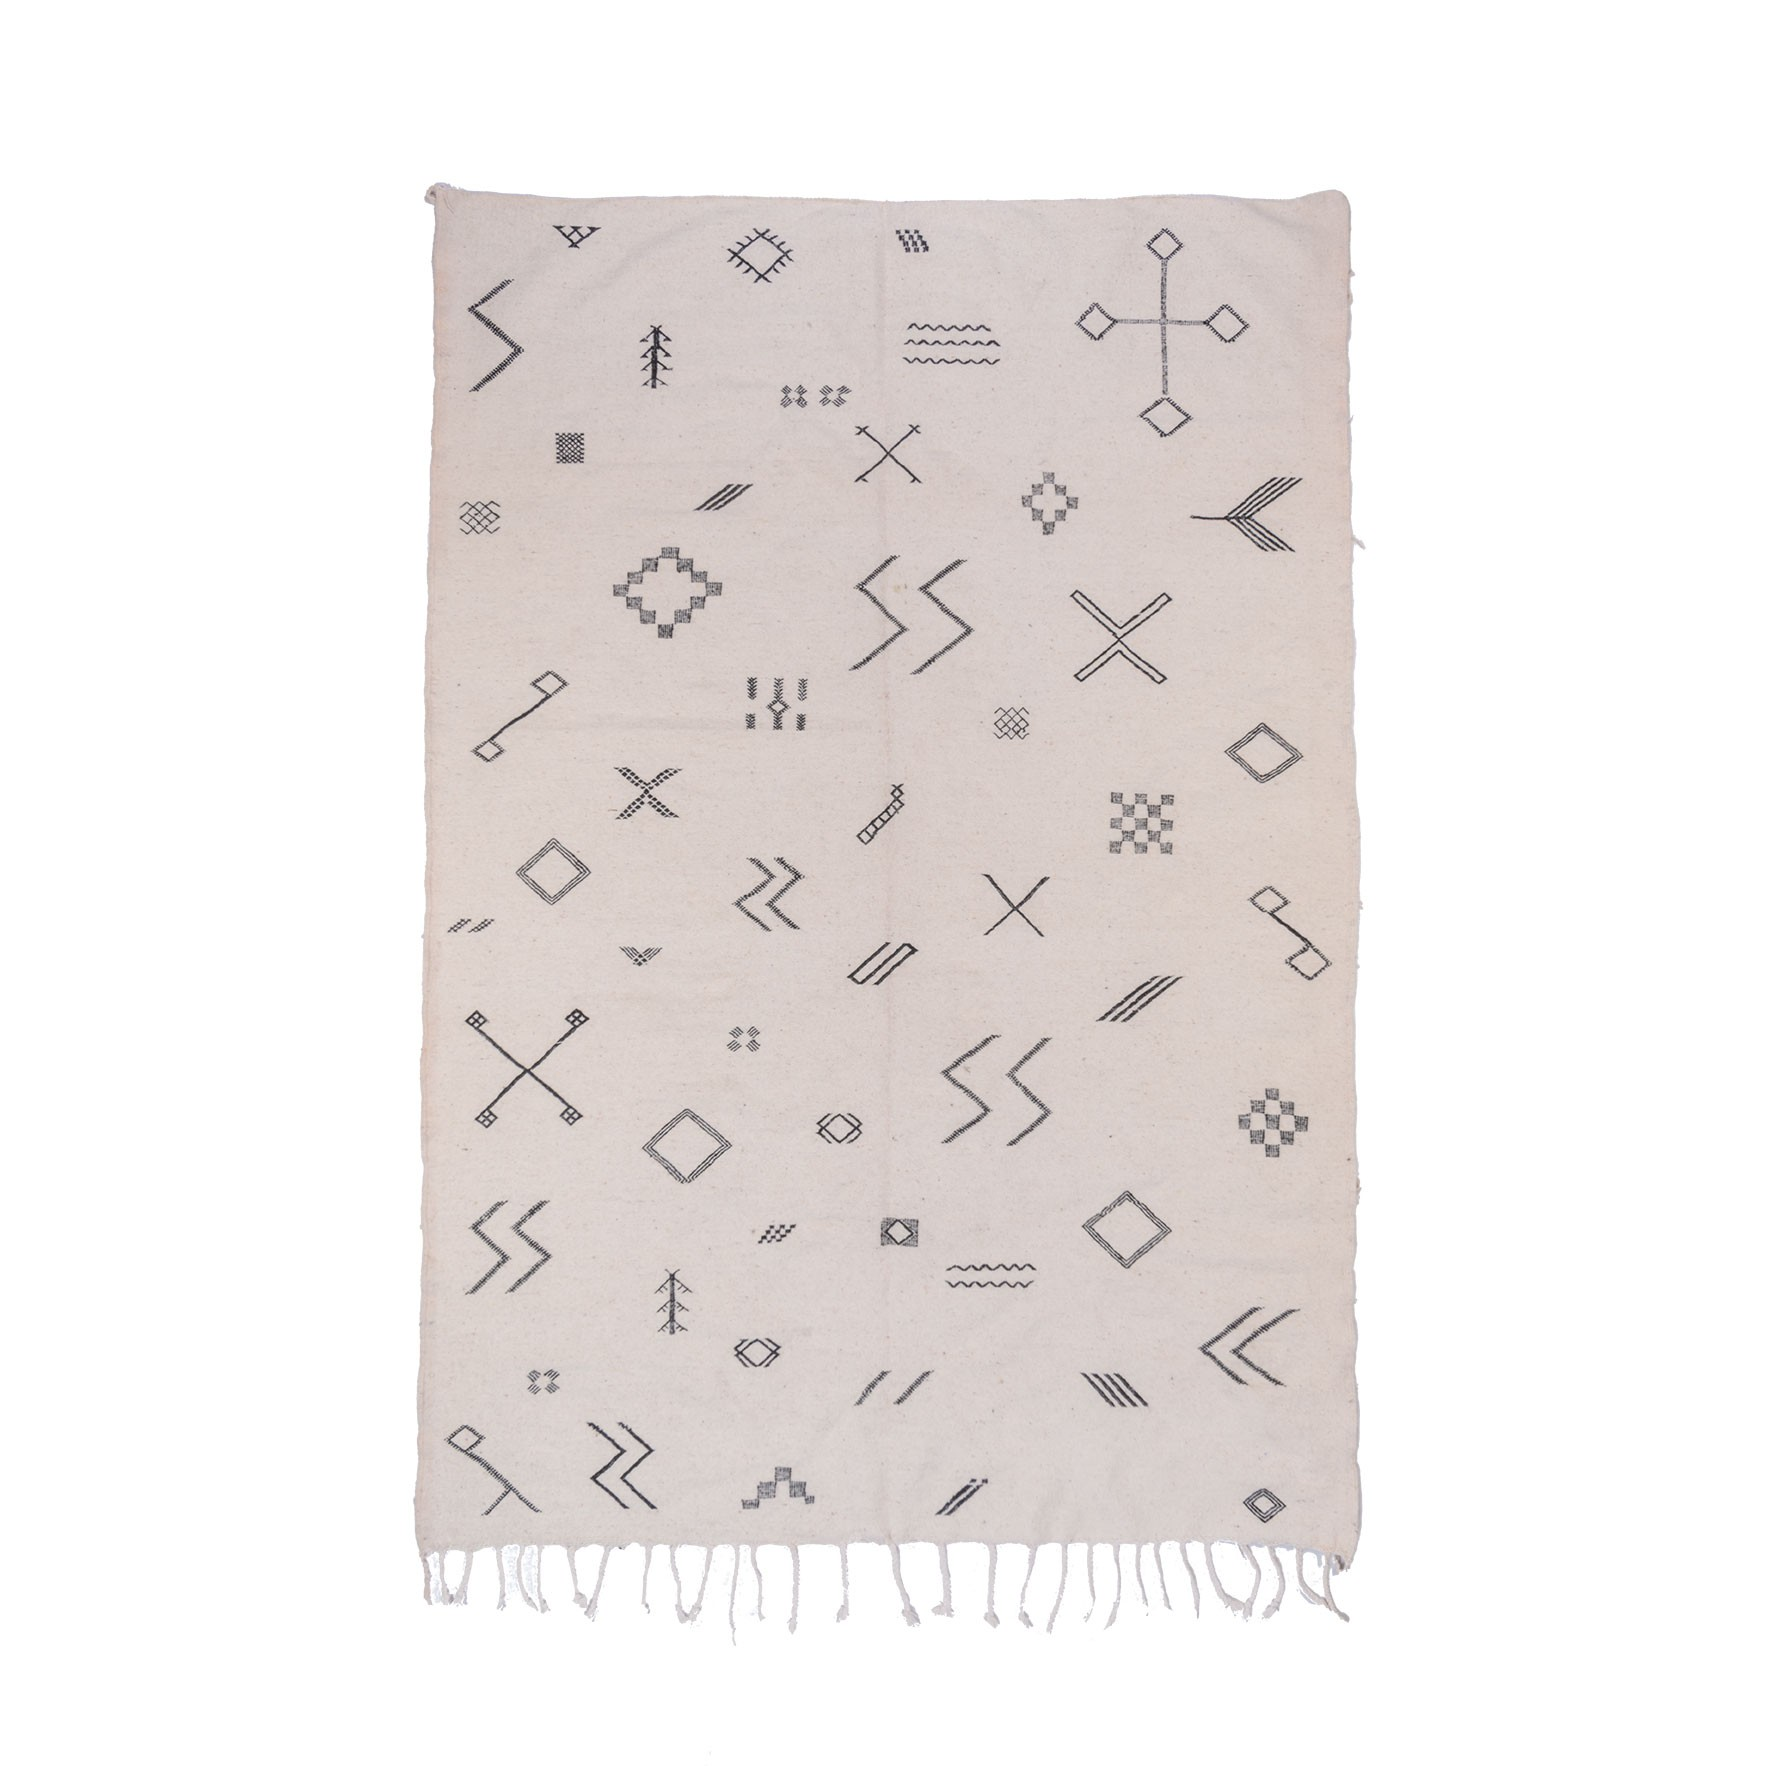 White and gray kilim rug